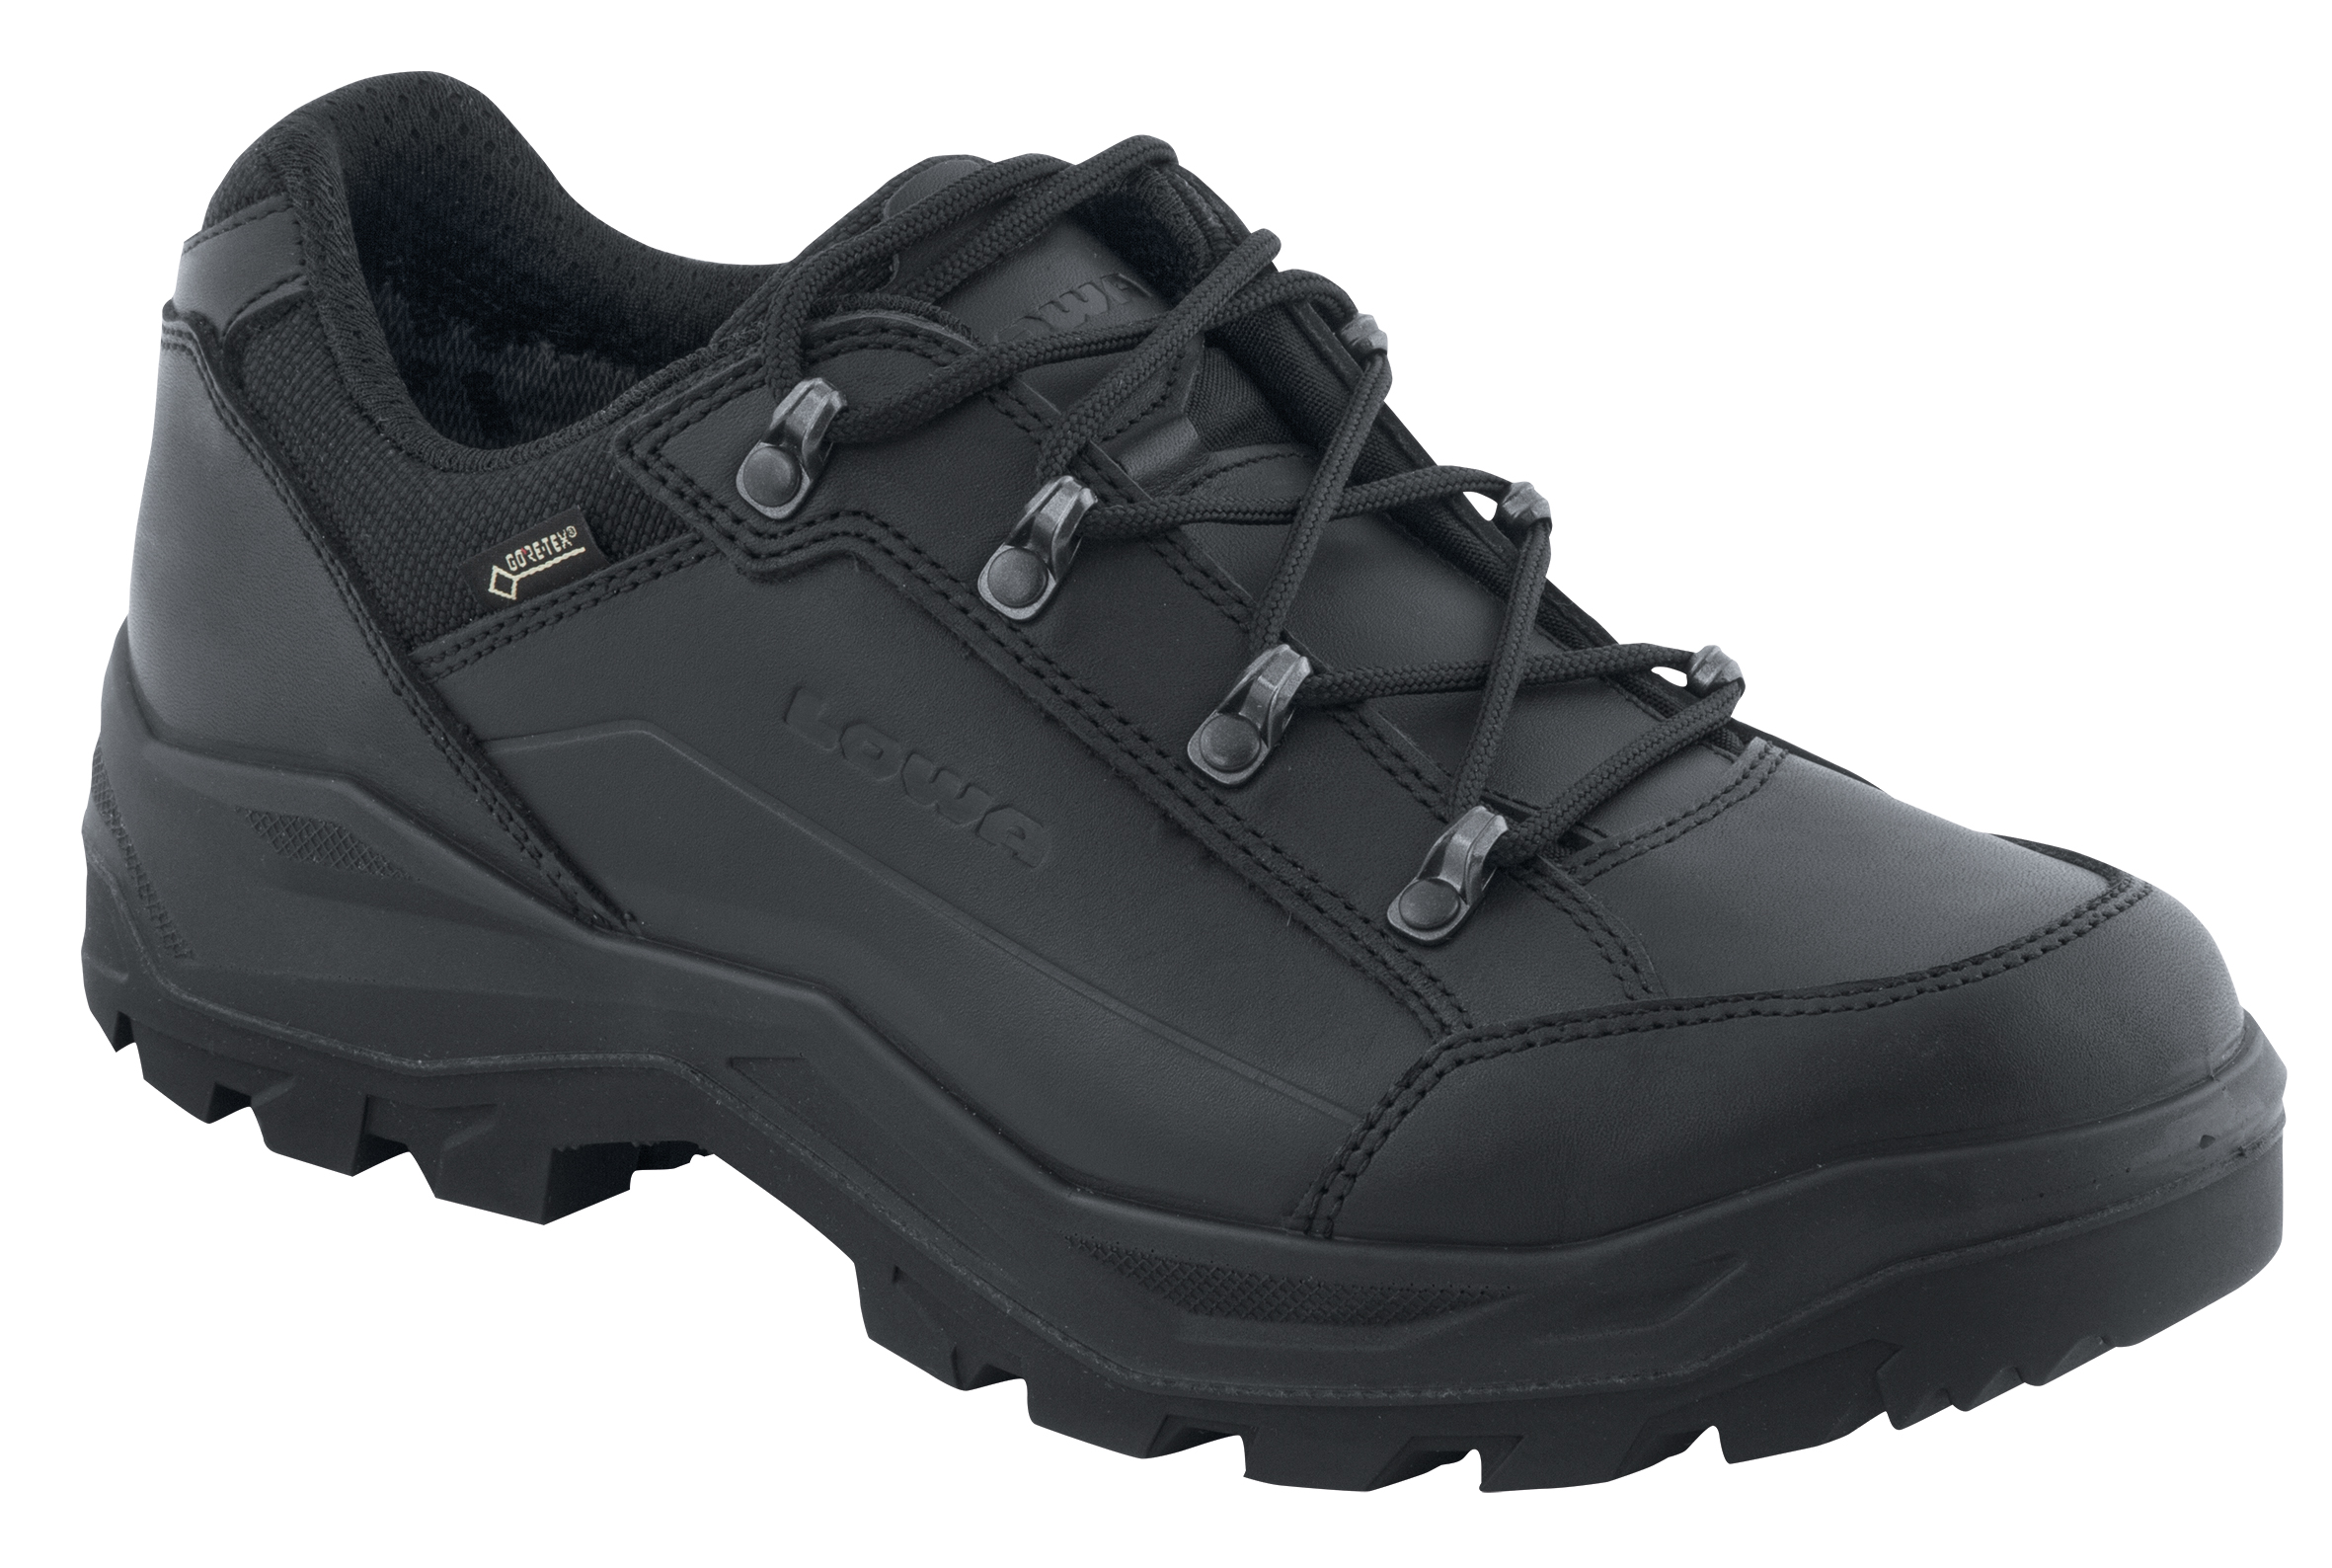 846c153c2c4 Lowa Renegade II GTX LO TF Schwarz | Recon Company - Outdoor, Military,  Police - Tactical Clothing and Equipment